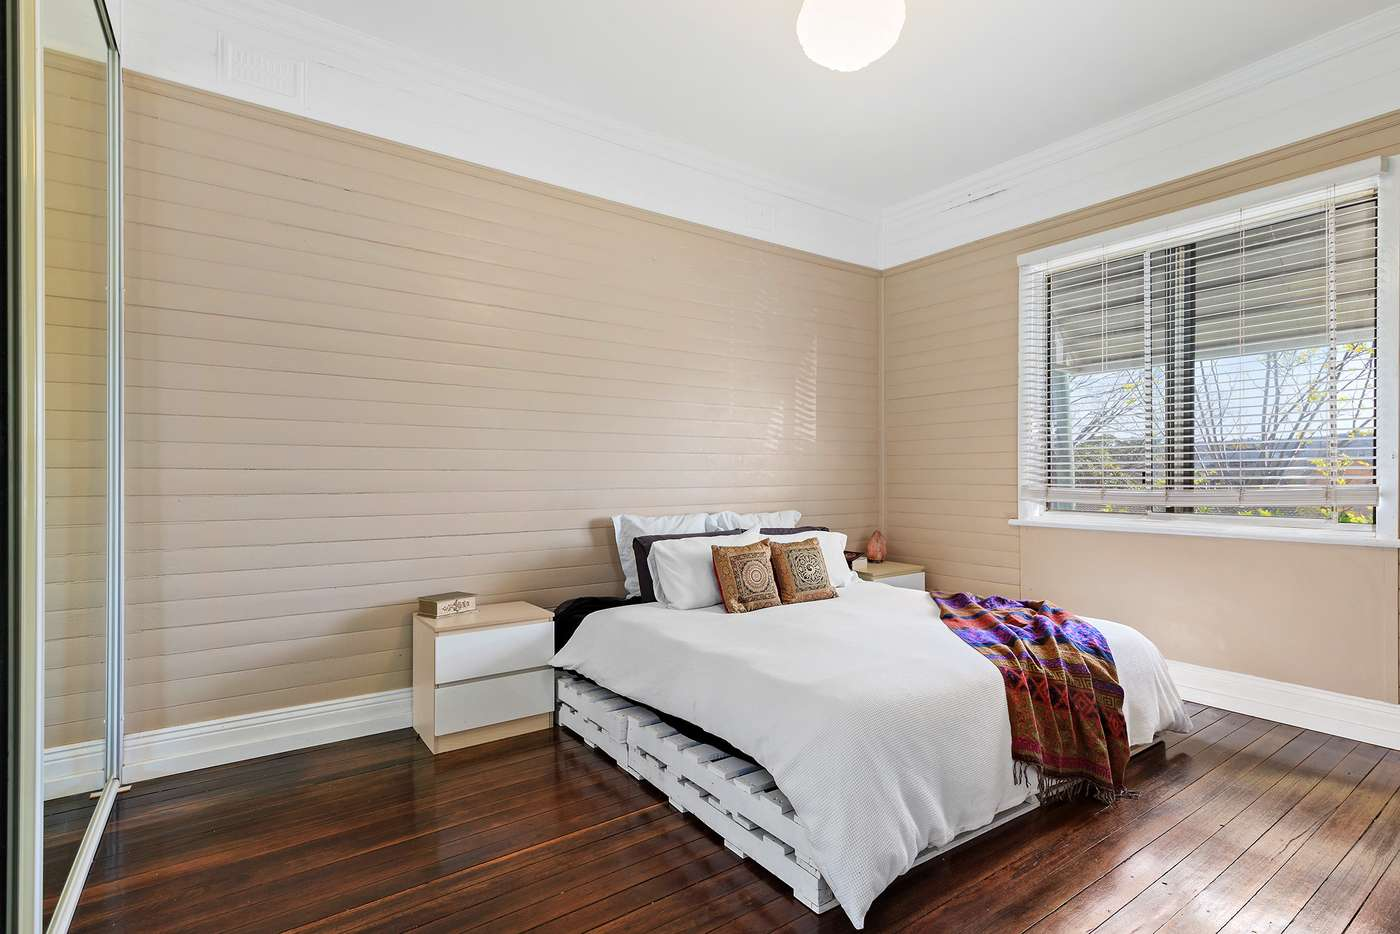 Fifth view of Homely house listing, 9 Date Street, Adamstown NSW 2289